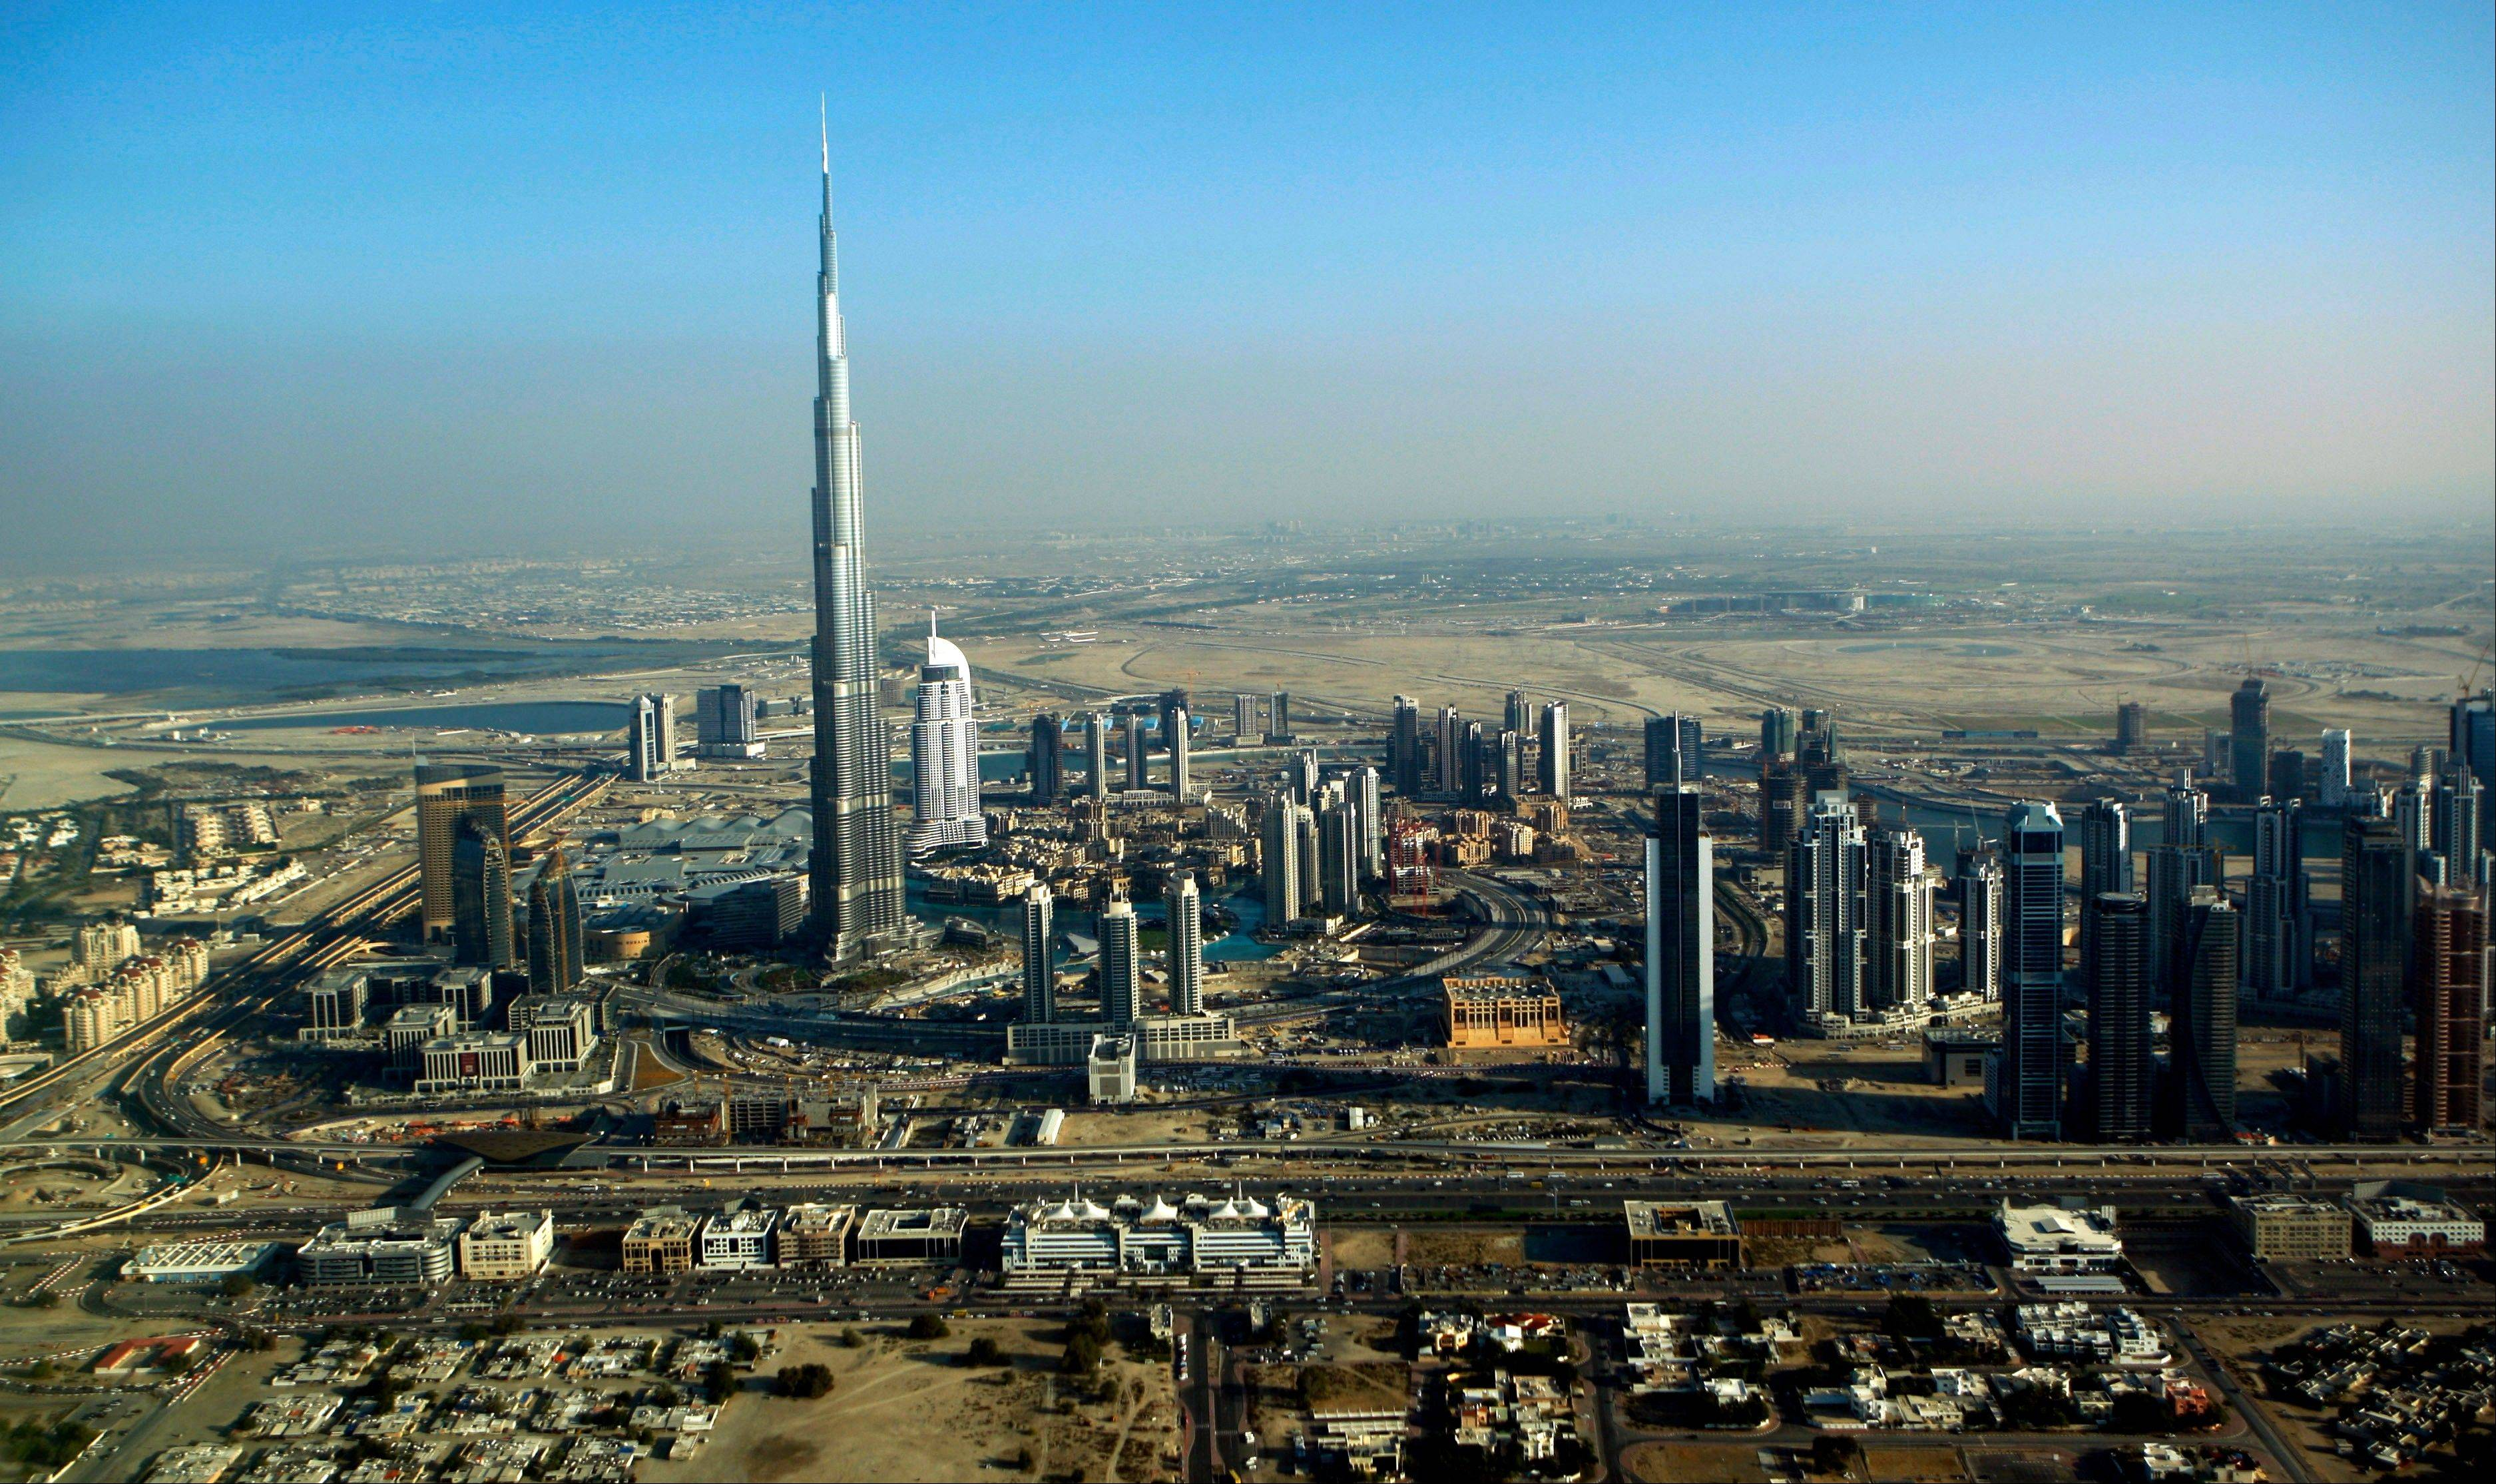 The Burj Dubai, the world�s tallest building, in Dubai, United Arab Emirates. It suddenly seems like Dubai is rediscovering its old habits. That means breathless hype is now back in vogue. Construction plans are again peppered with superlatives.